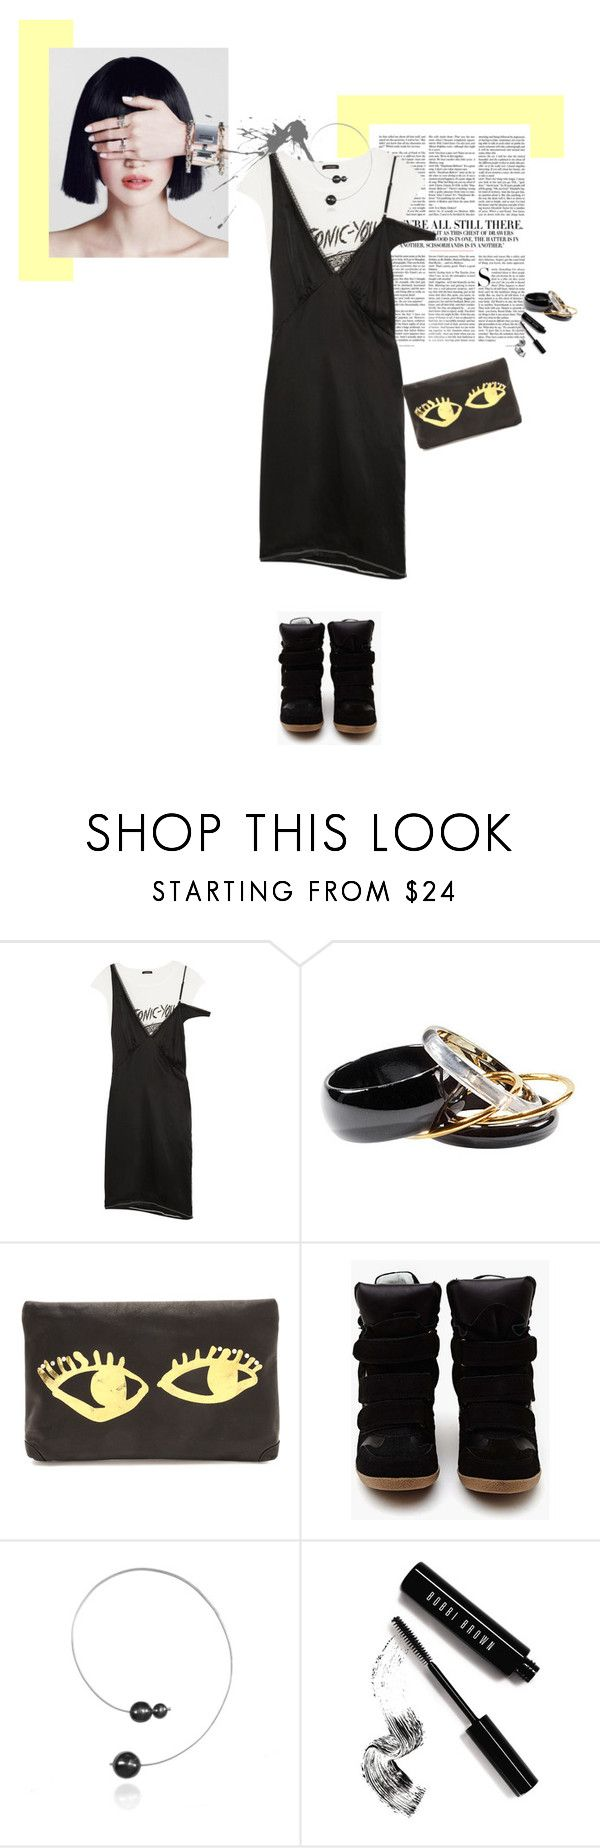 """Estate Casual"" by piccolauby ❤ liked on Polyvore featuring Vanity Fair, R13, H&M, Steve Madden and Bobbi Brown Cosmetics"